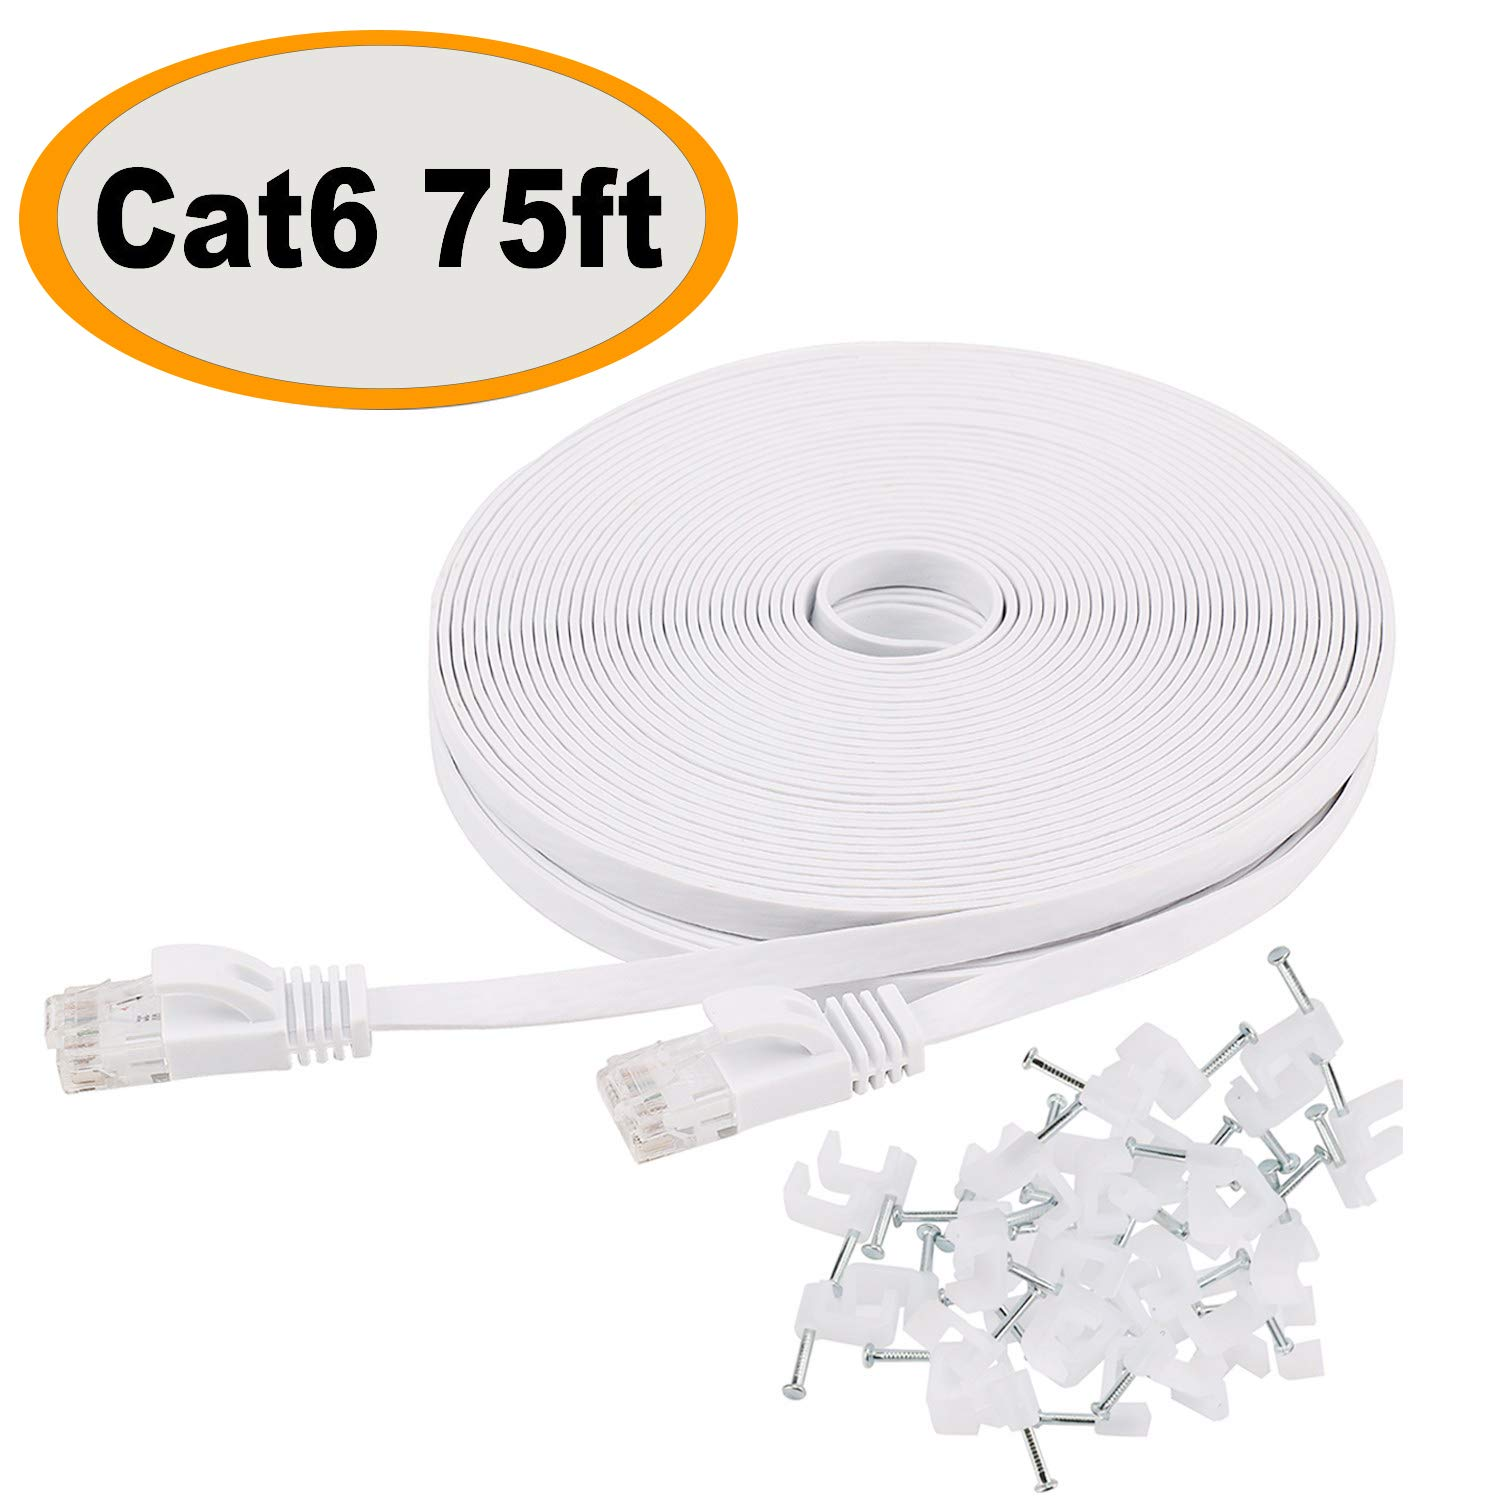 Cat 6 Ethernet Cable 75 ft Flat with Clips, Durable Long Internet Network LAN Patch Cords, Solid Cat6 High Speed Computer wire with RJ45 Connectors for Router, Modem, PS, Faster Than CAT5E/Cat5, White by Jadaol